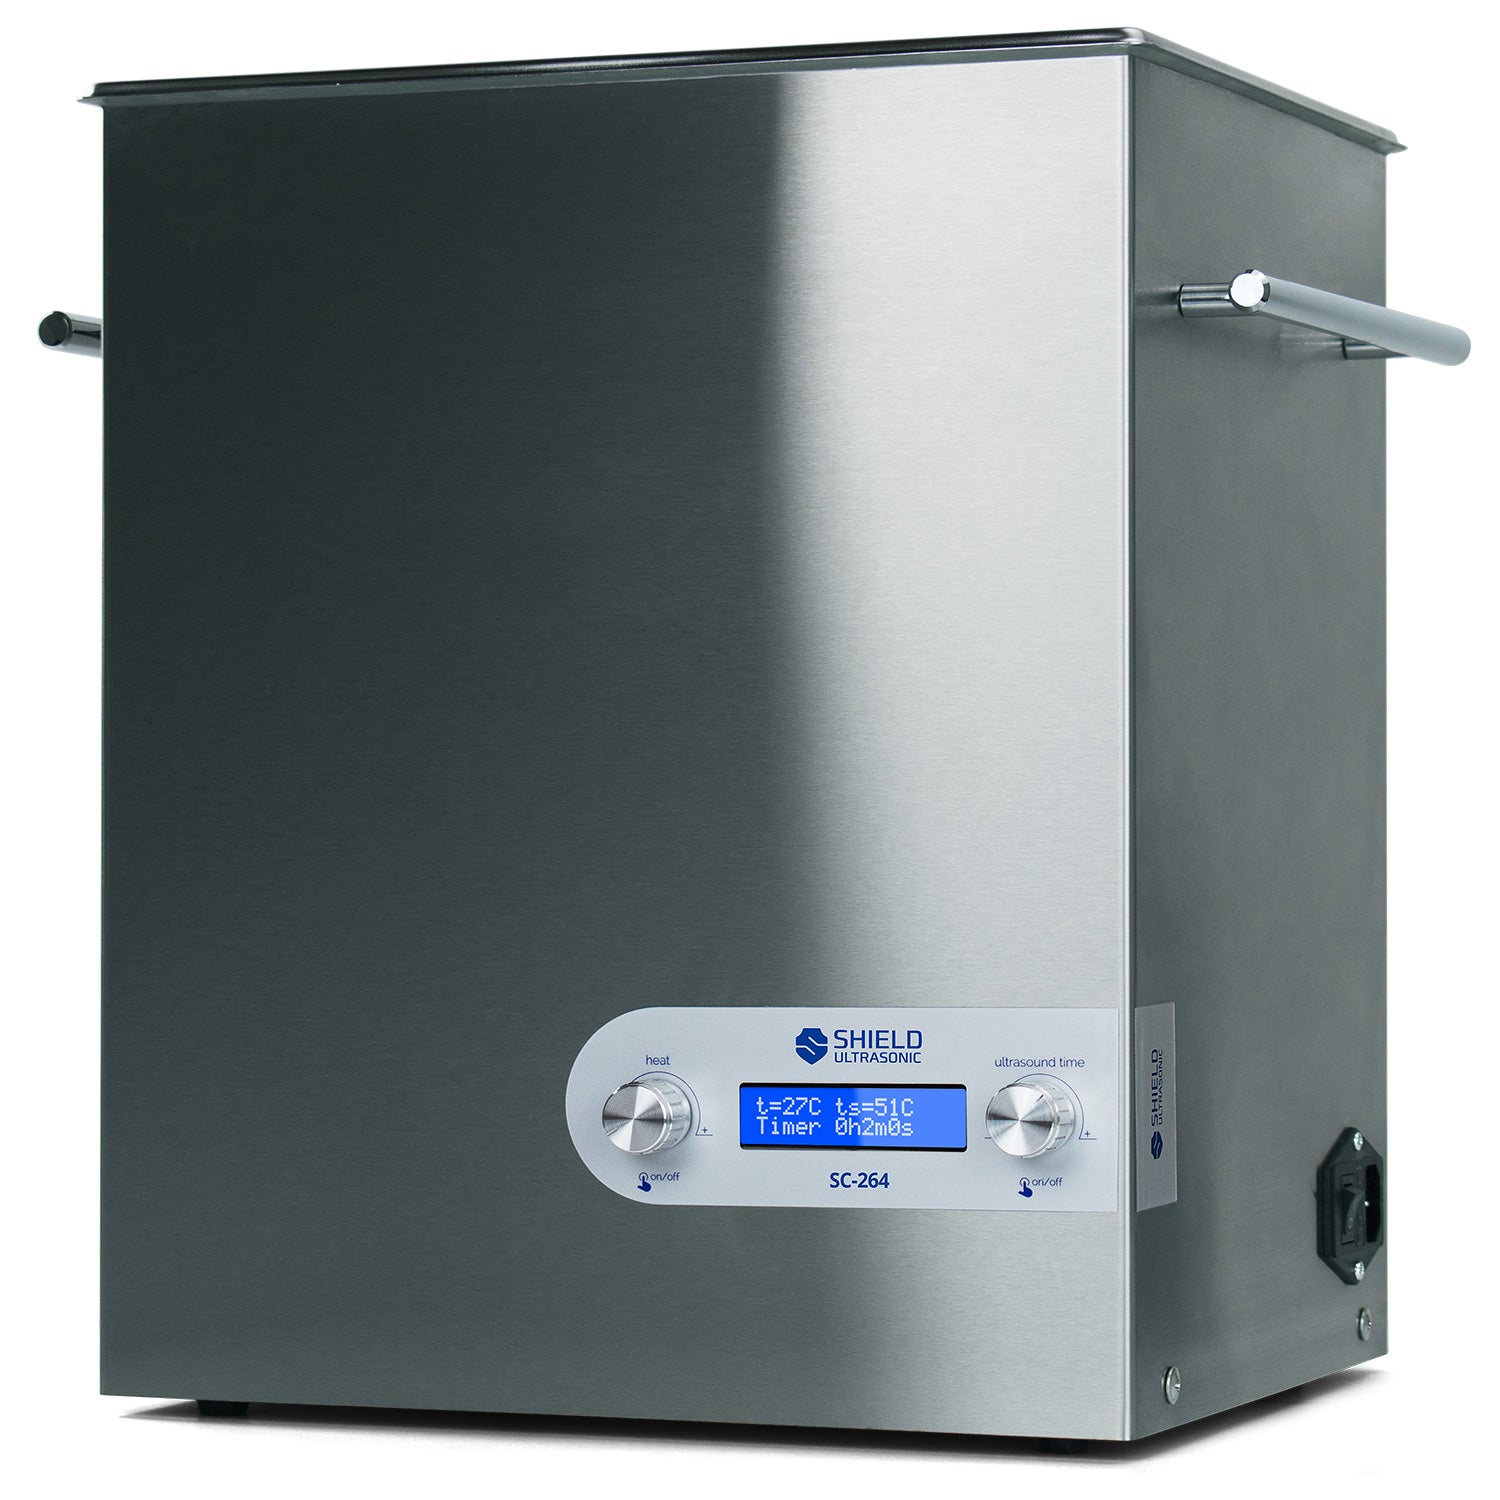 Shield Ultrasonic SC-264 Ultrasonic Cleaner 2.64gal / 10l | Stainless Steel, Heating, Digital, Laboratory Grade 25k